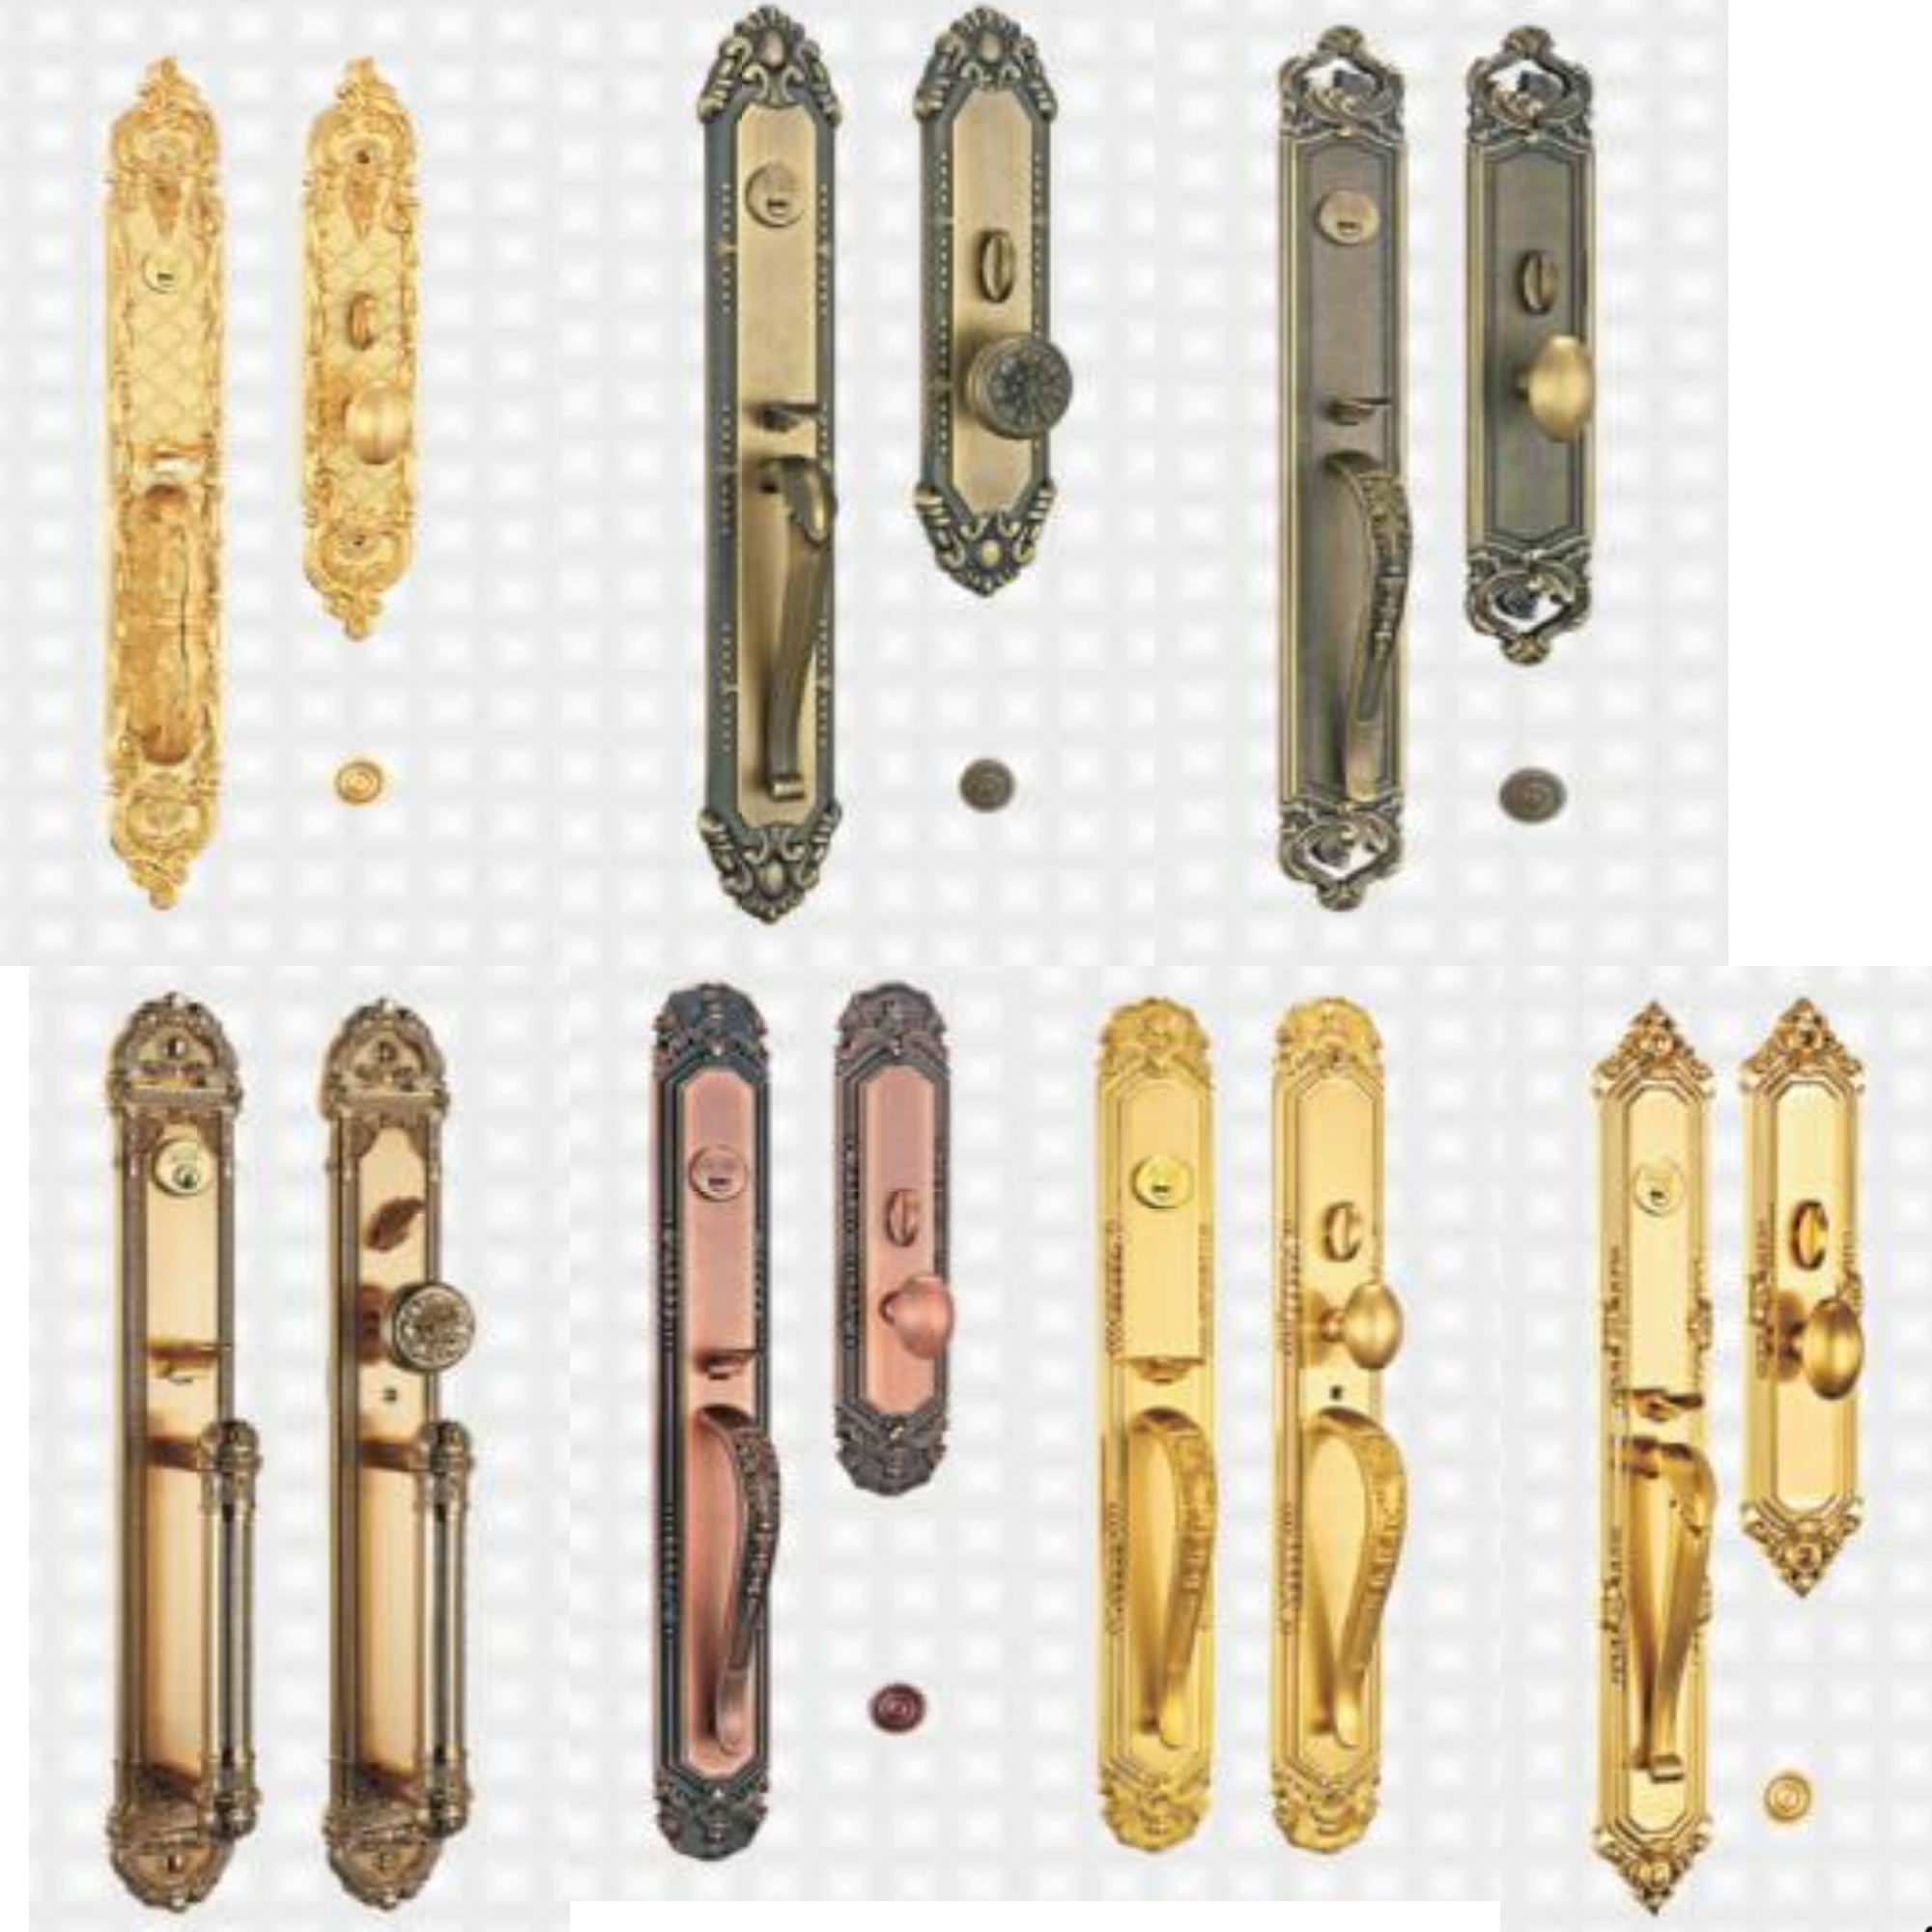 hot sale USA standard ANSI grade mortise door handle set lock cerraduras de seguridad brass door lock handle set